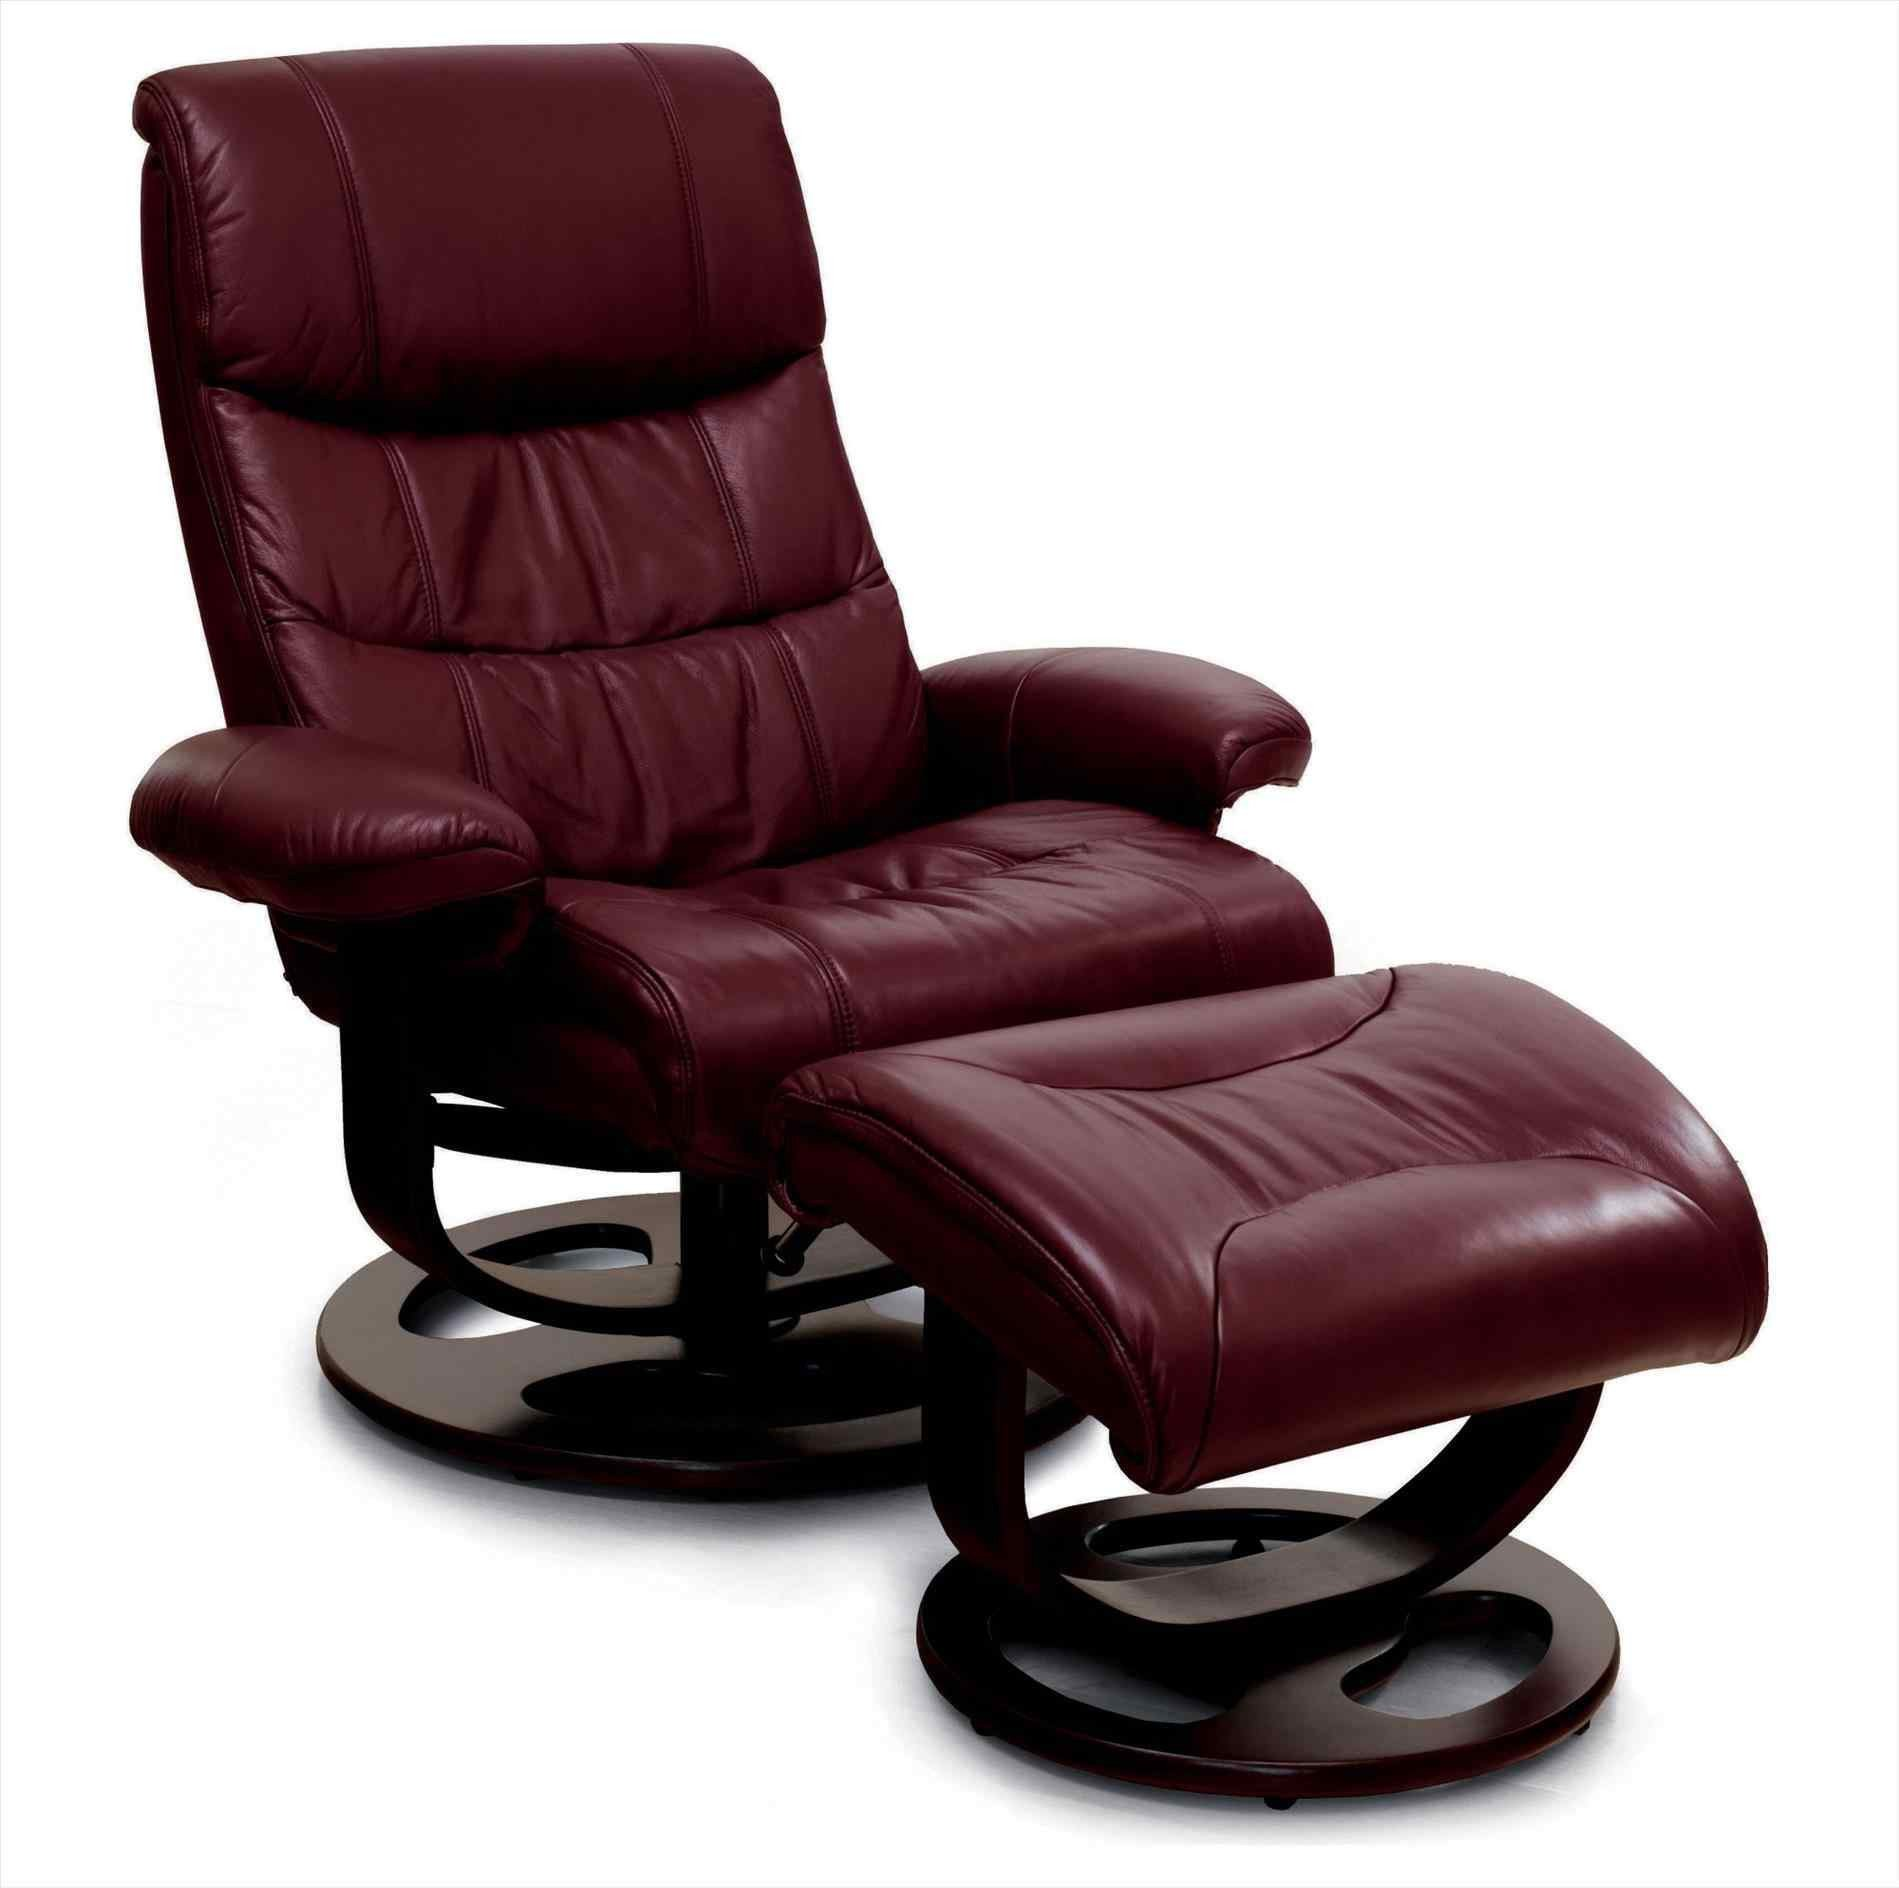 Most Comfortable Living Room Chair Elegant 20 Collection Most fortable Chair Designs for fortable Sitting Work Positions